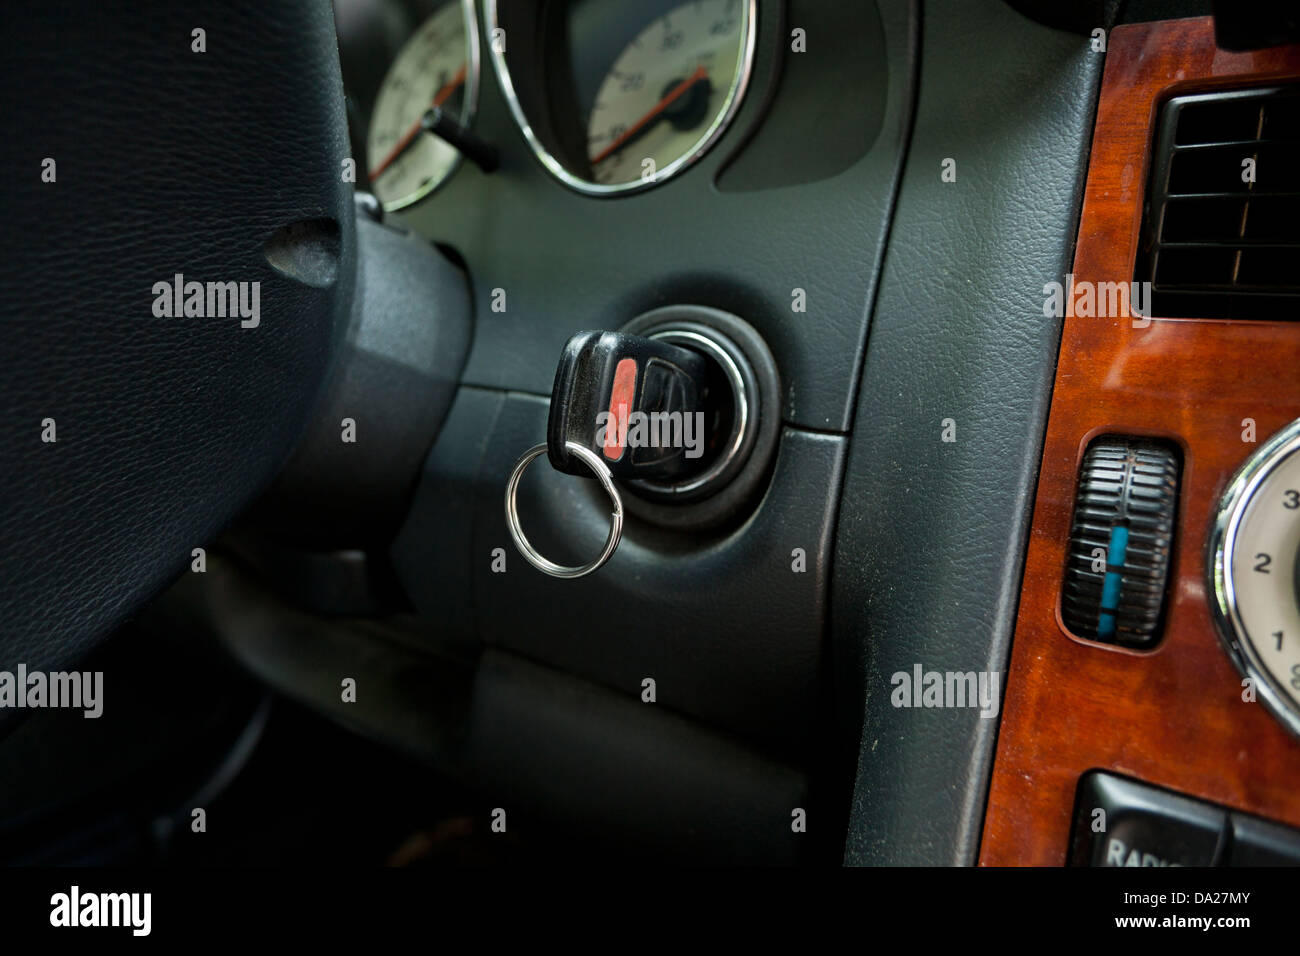 Car key in ignition - Stock Image